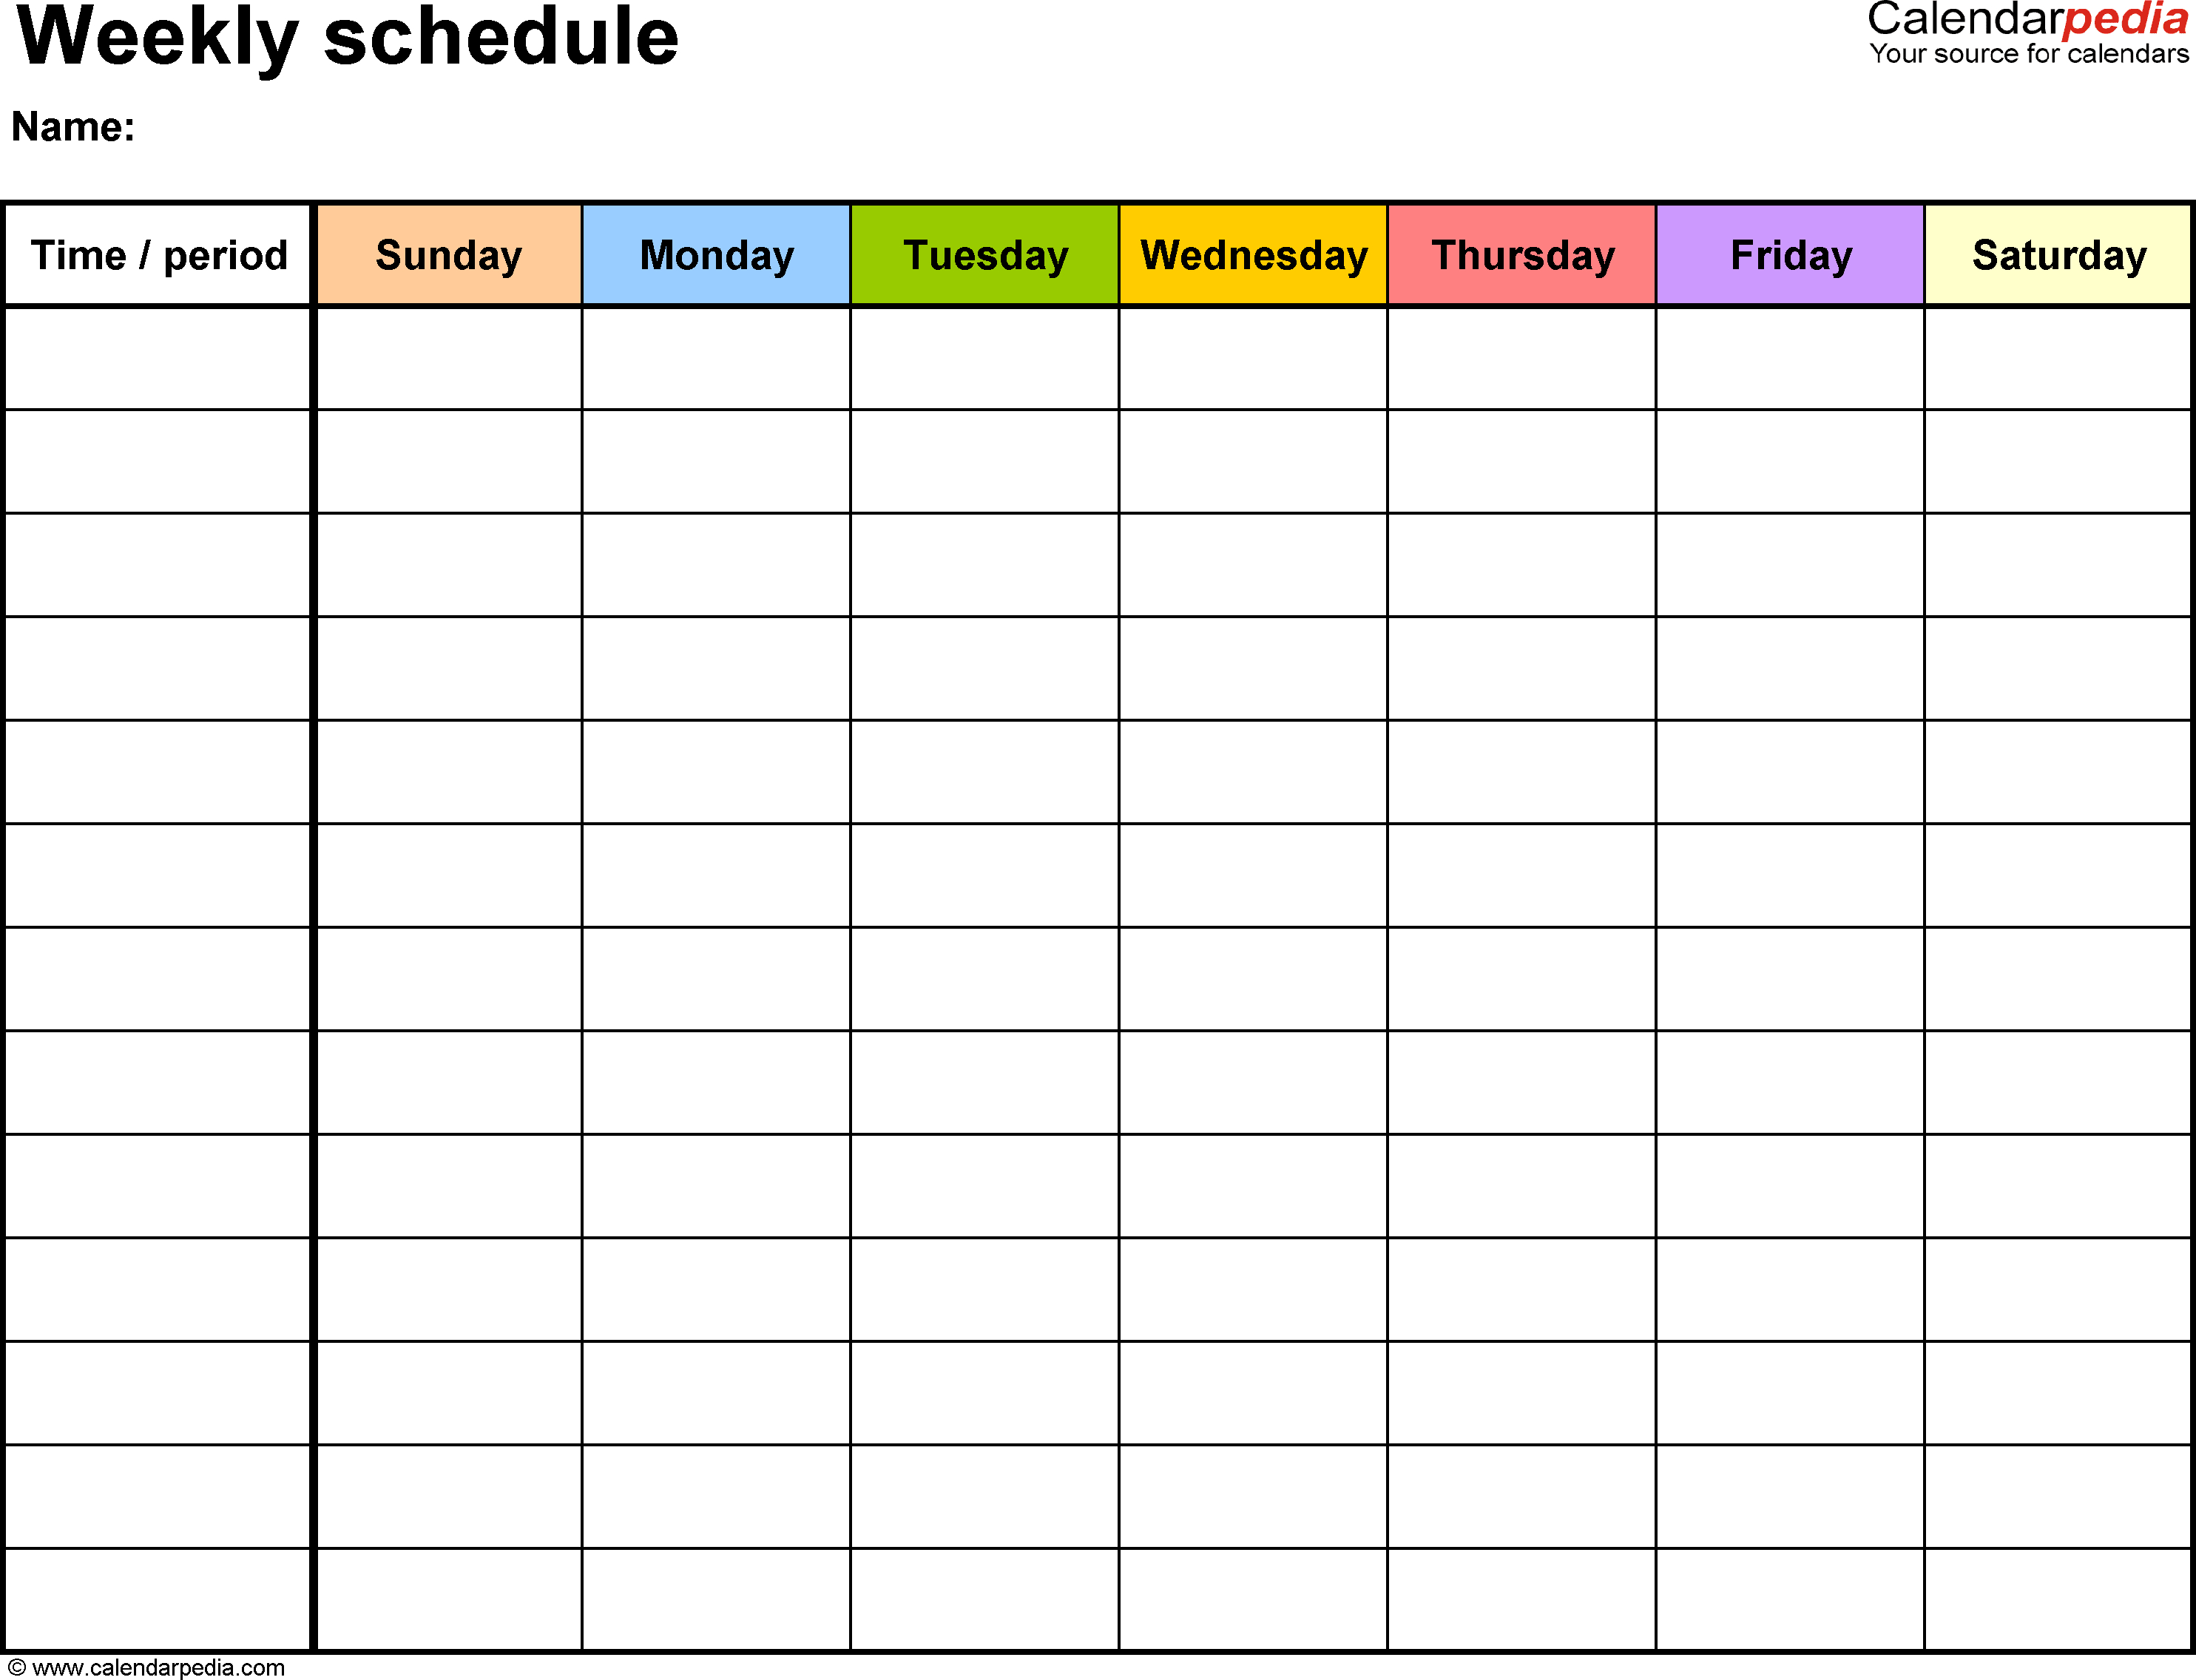 Free Weekly Schedule Templates For Excel - 18 Templates with Blank Copy Of Monthly Sign Up Sheet Calendar Schedule